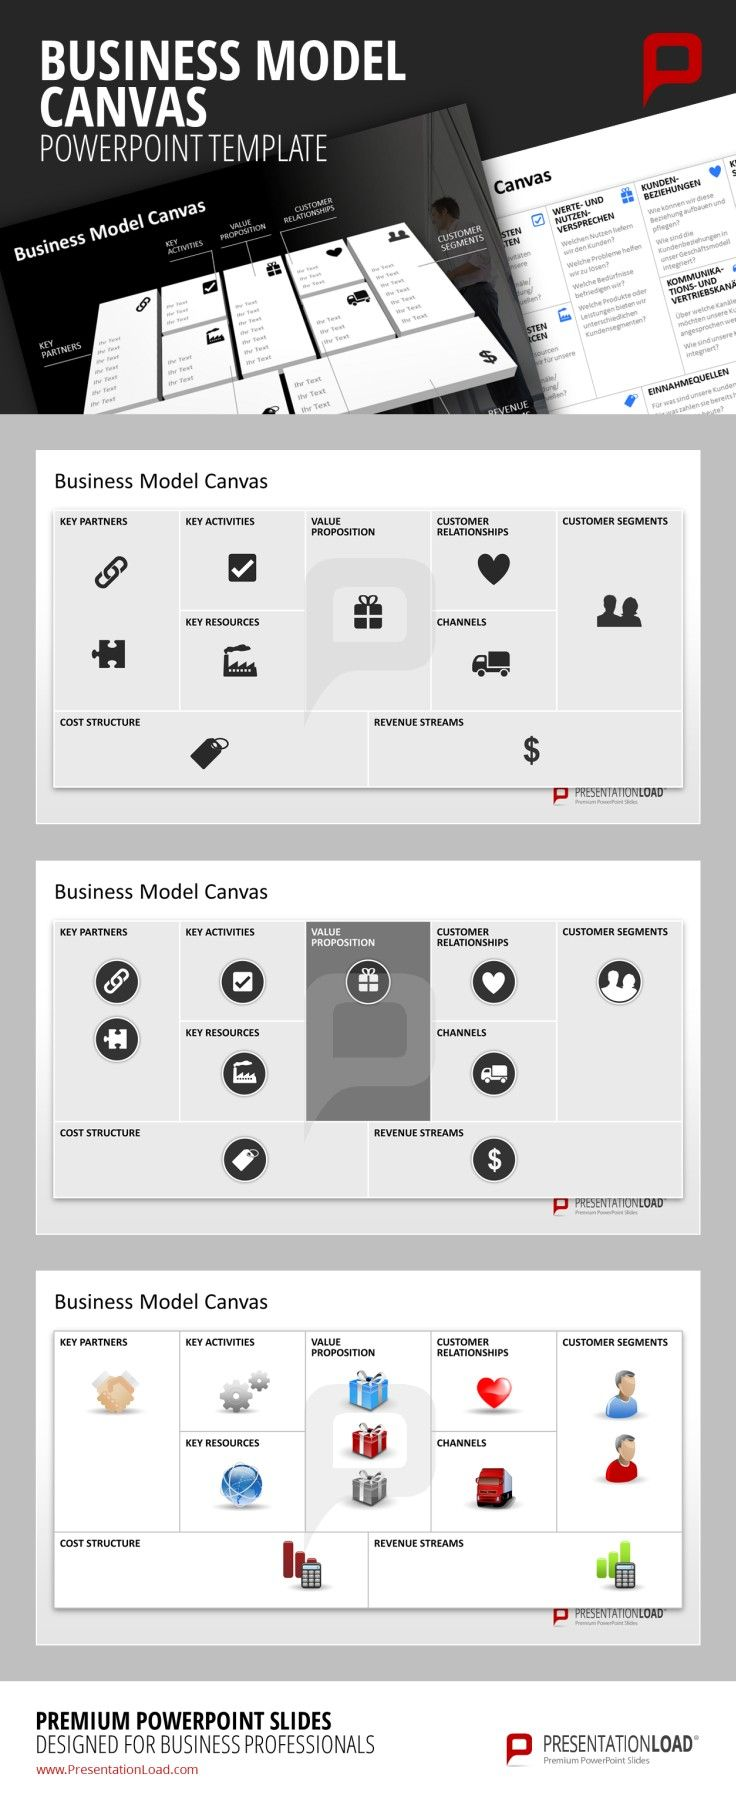 37 best BUSINESS MODEL CANVAS // POWERPOINT TEMPLATES images on ...